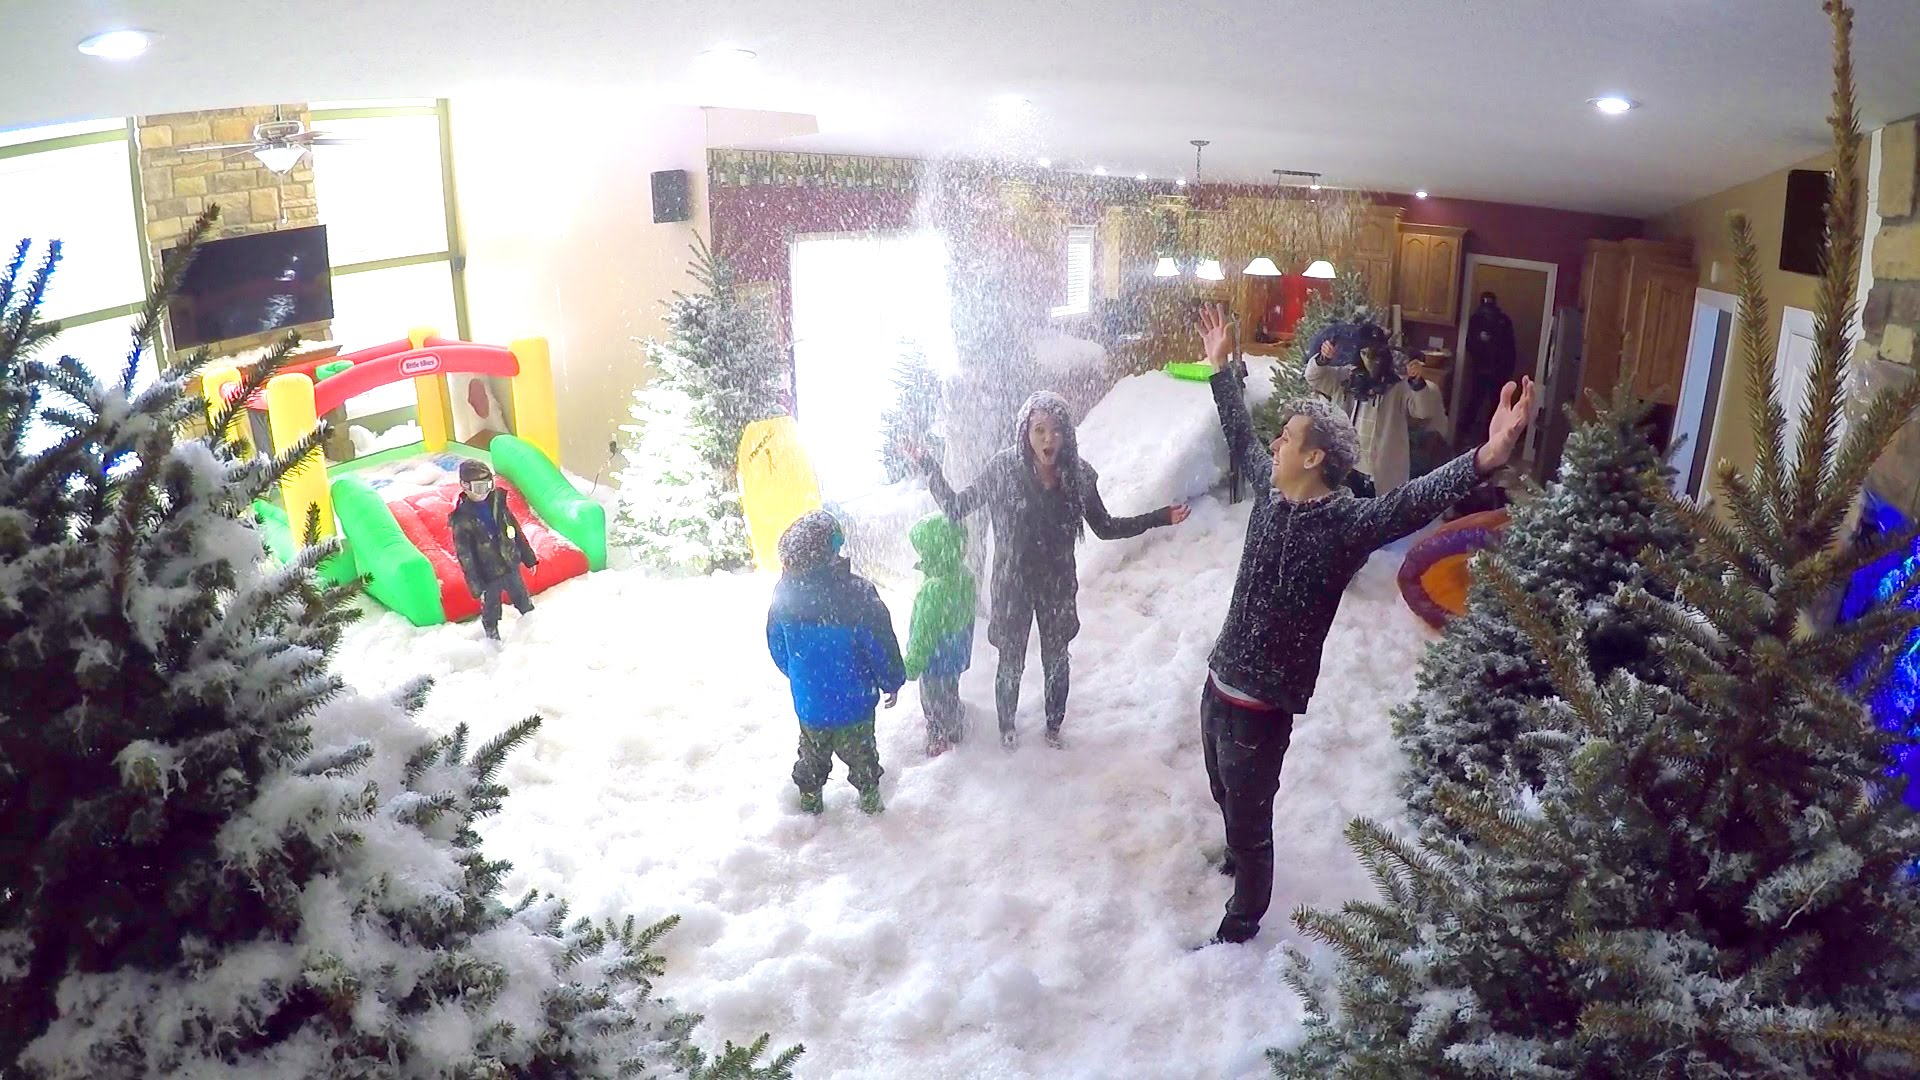 Roman Atwood Surprises His Kids By Filling Their Entire Living Room With Snow